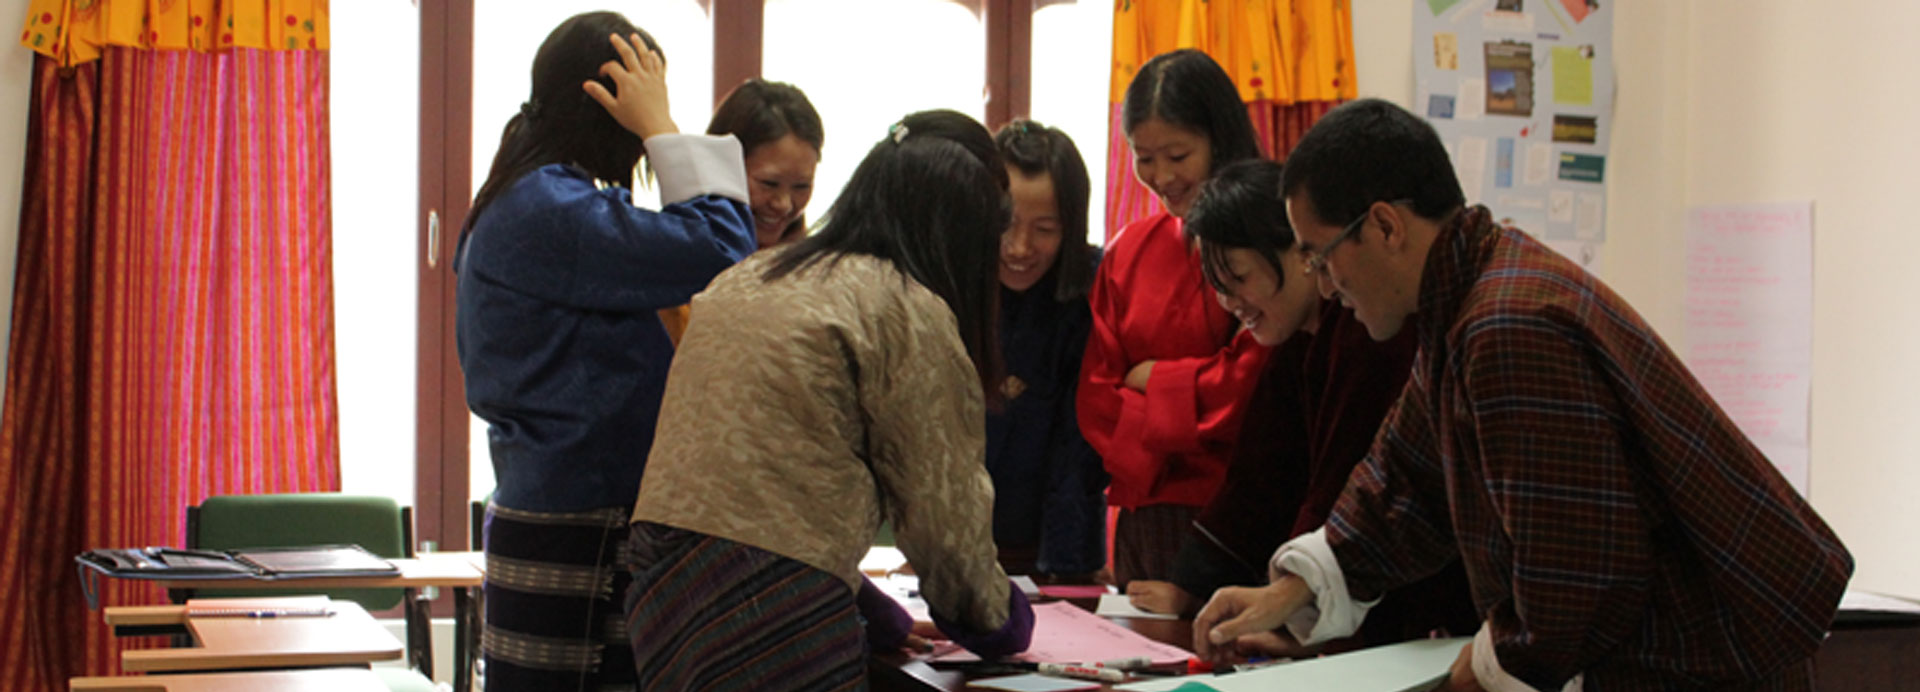 Bhutan incorporates GNH into every aspect of its economic development